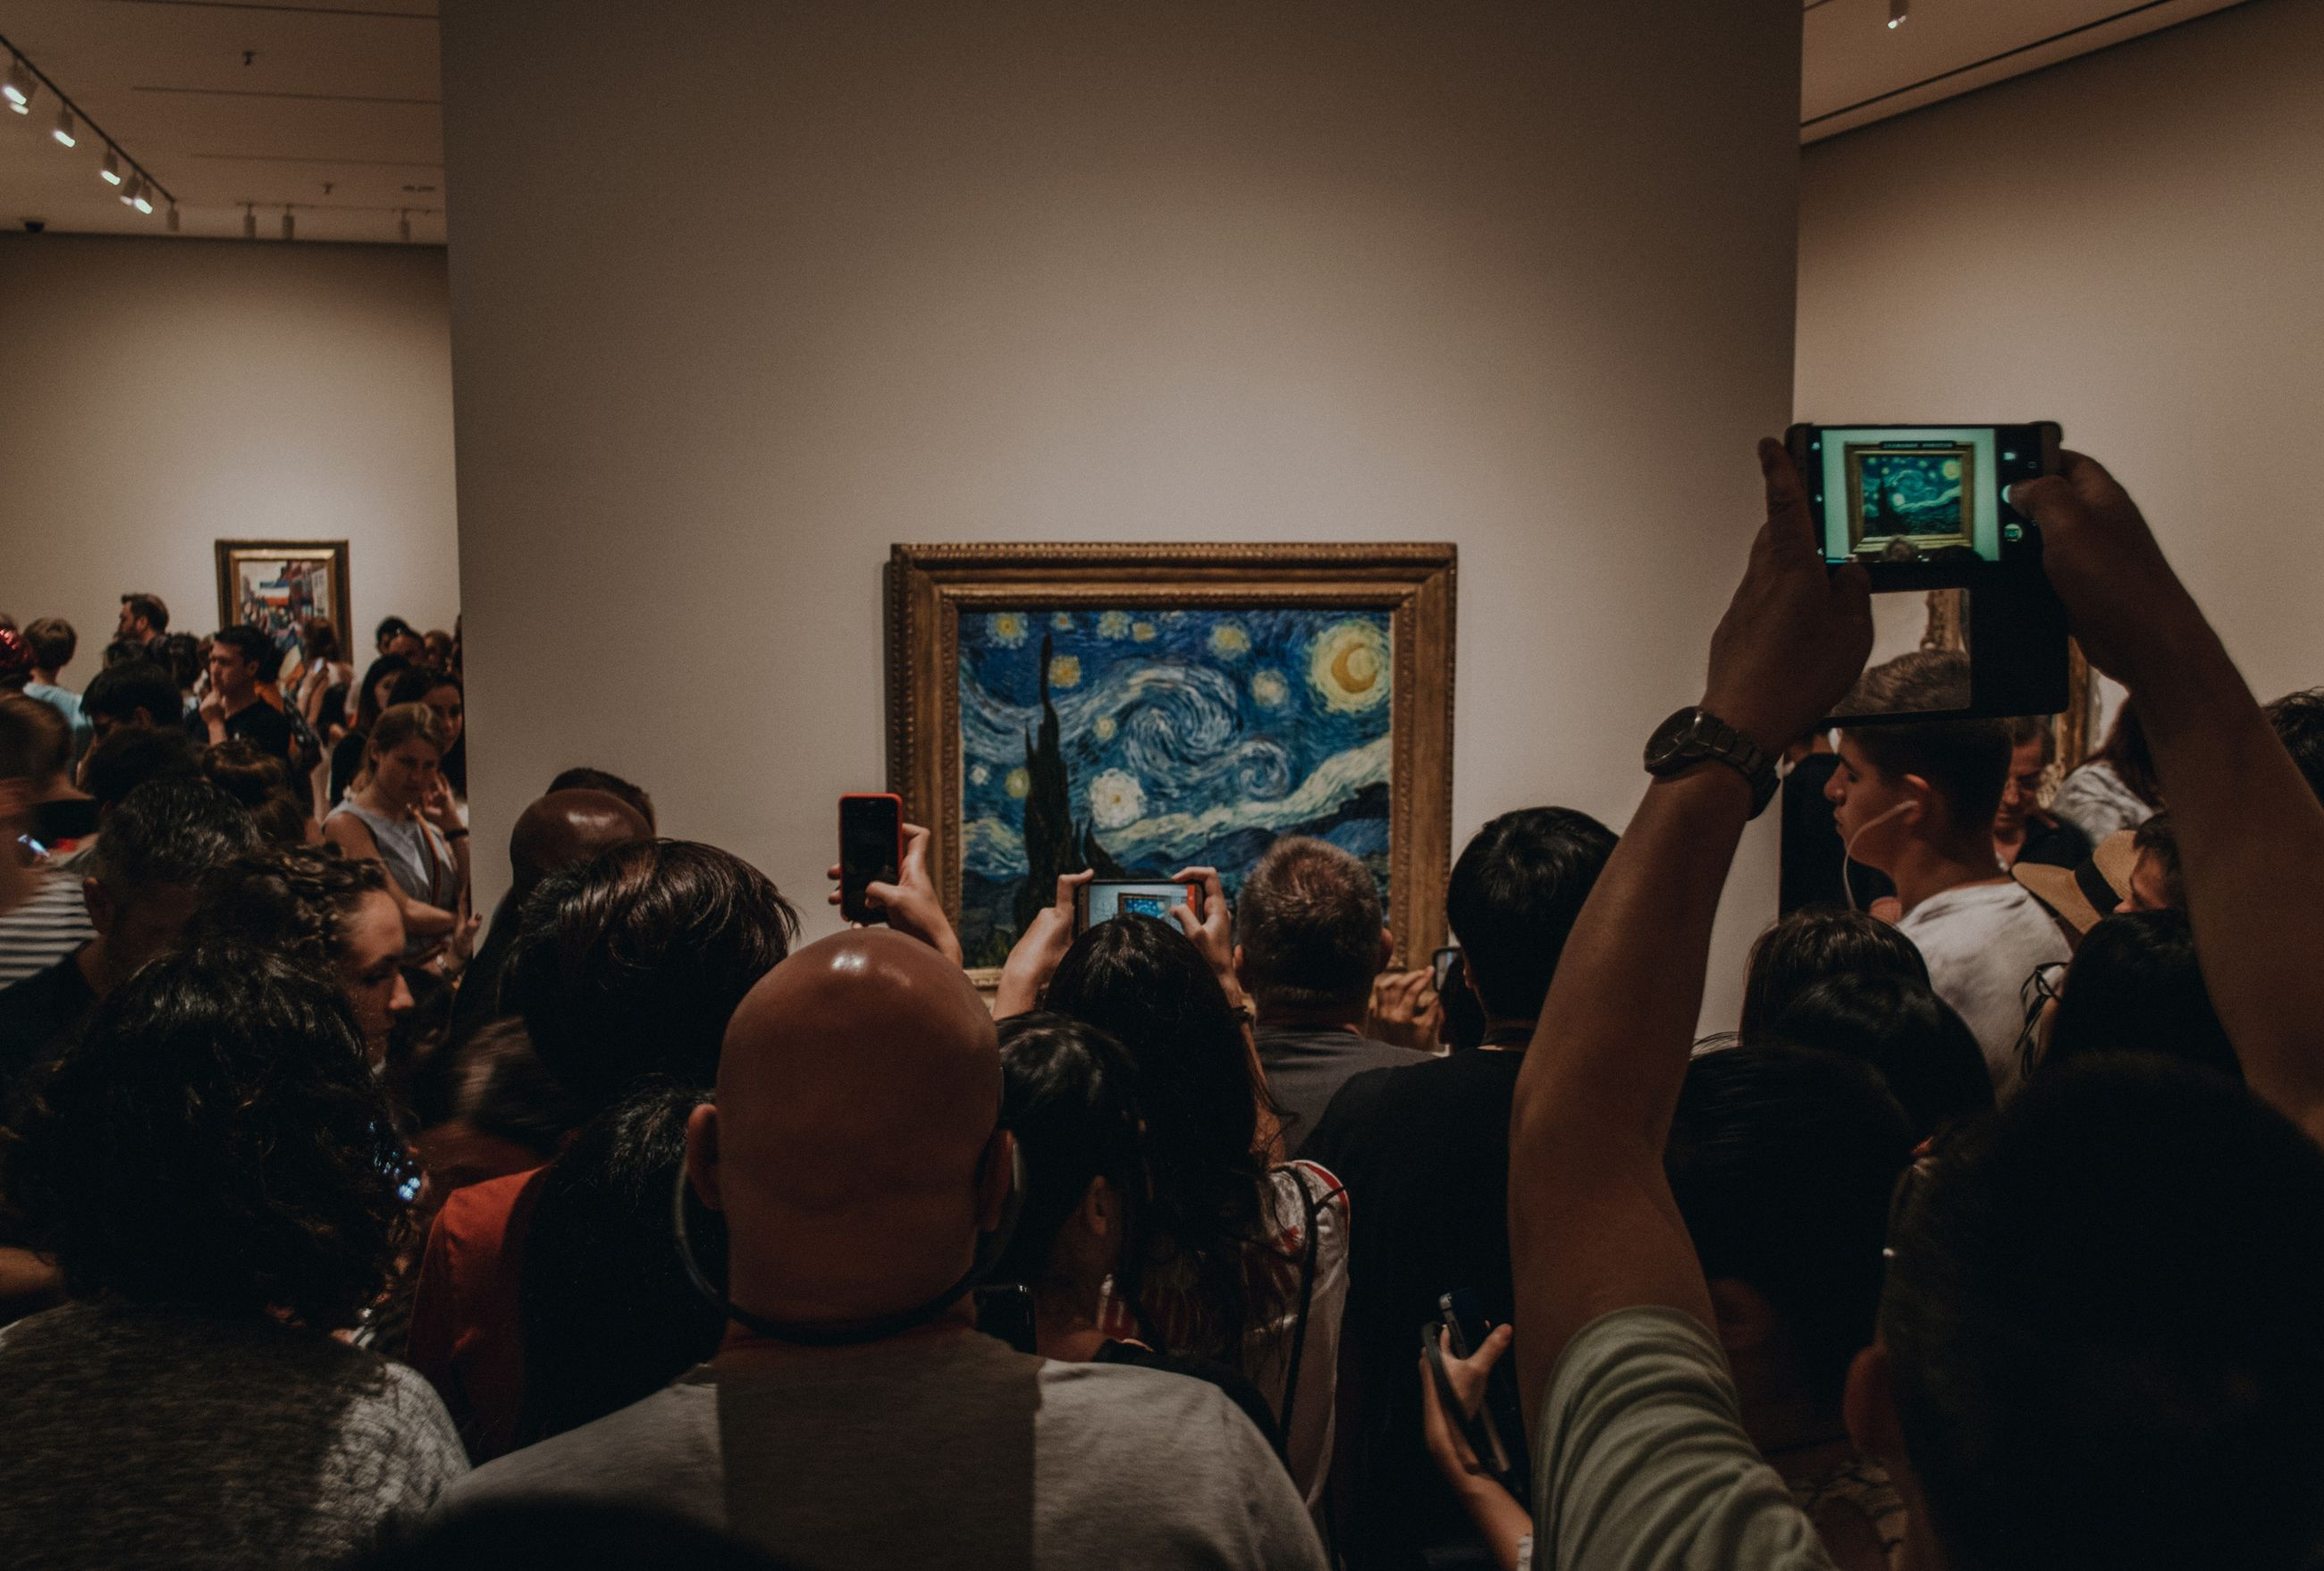 group of people, crowd, large group of people, real people, indoors, lifestyles, women, adult, men, representation, human representation, architecture, museum, picture frame, activity, leisure activity, looking, technology, paintings, watching